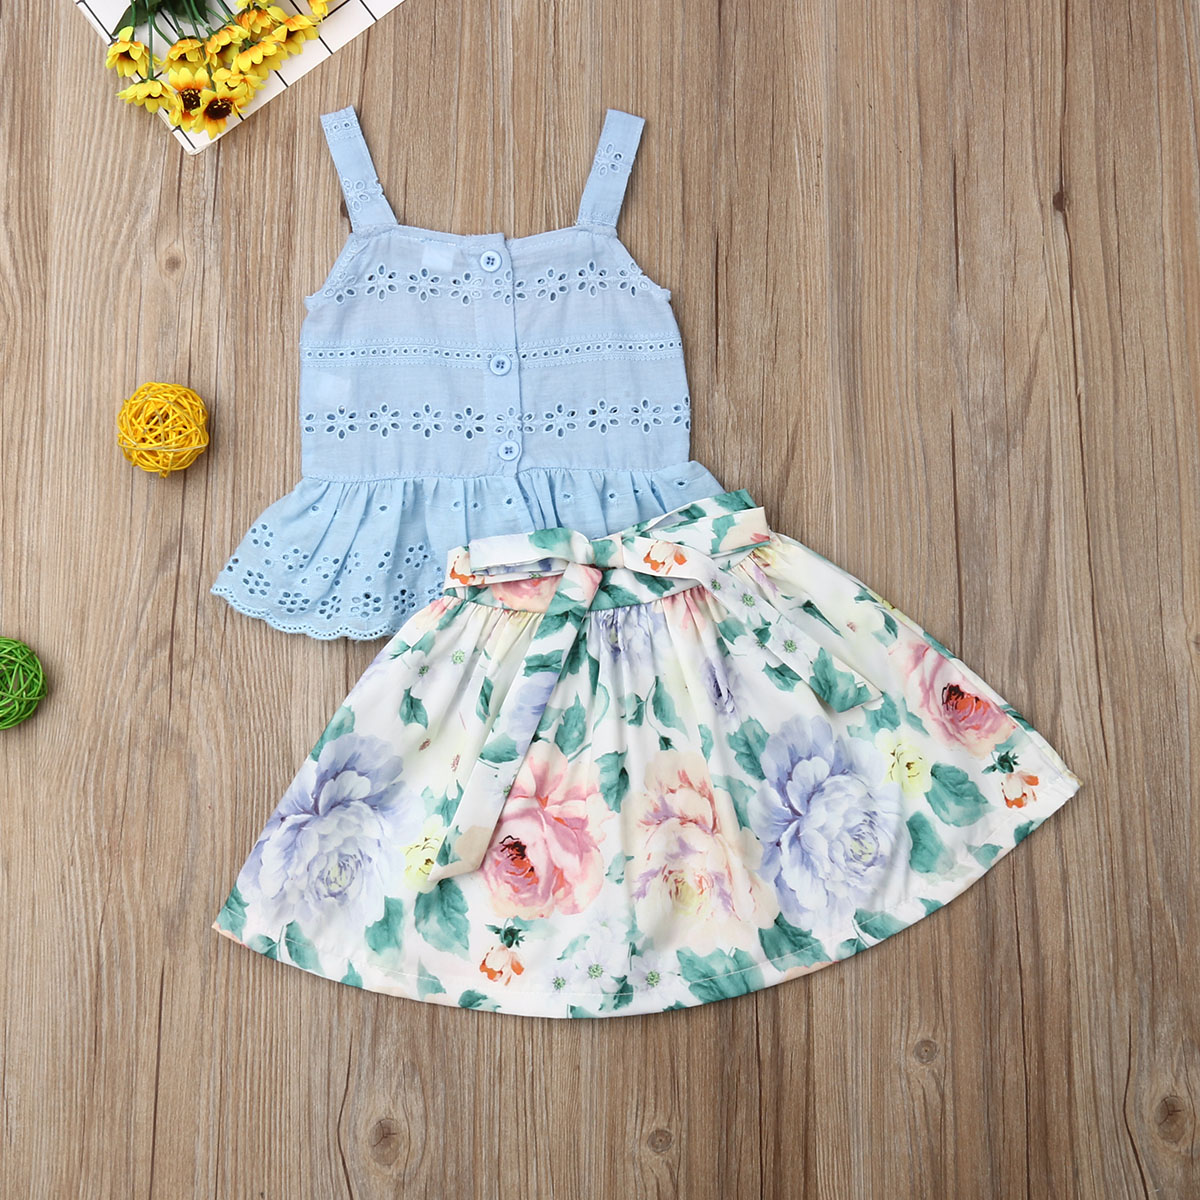 Pudcoco Summer Toddler Baby Girl Clothes Strap Ruffle Cotton Tops Flower Print Short Skirt 2Pcs Outfits Summer Clothes